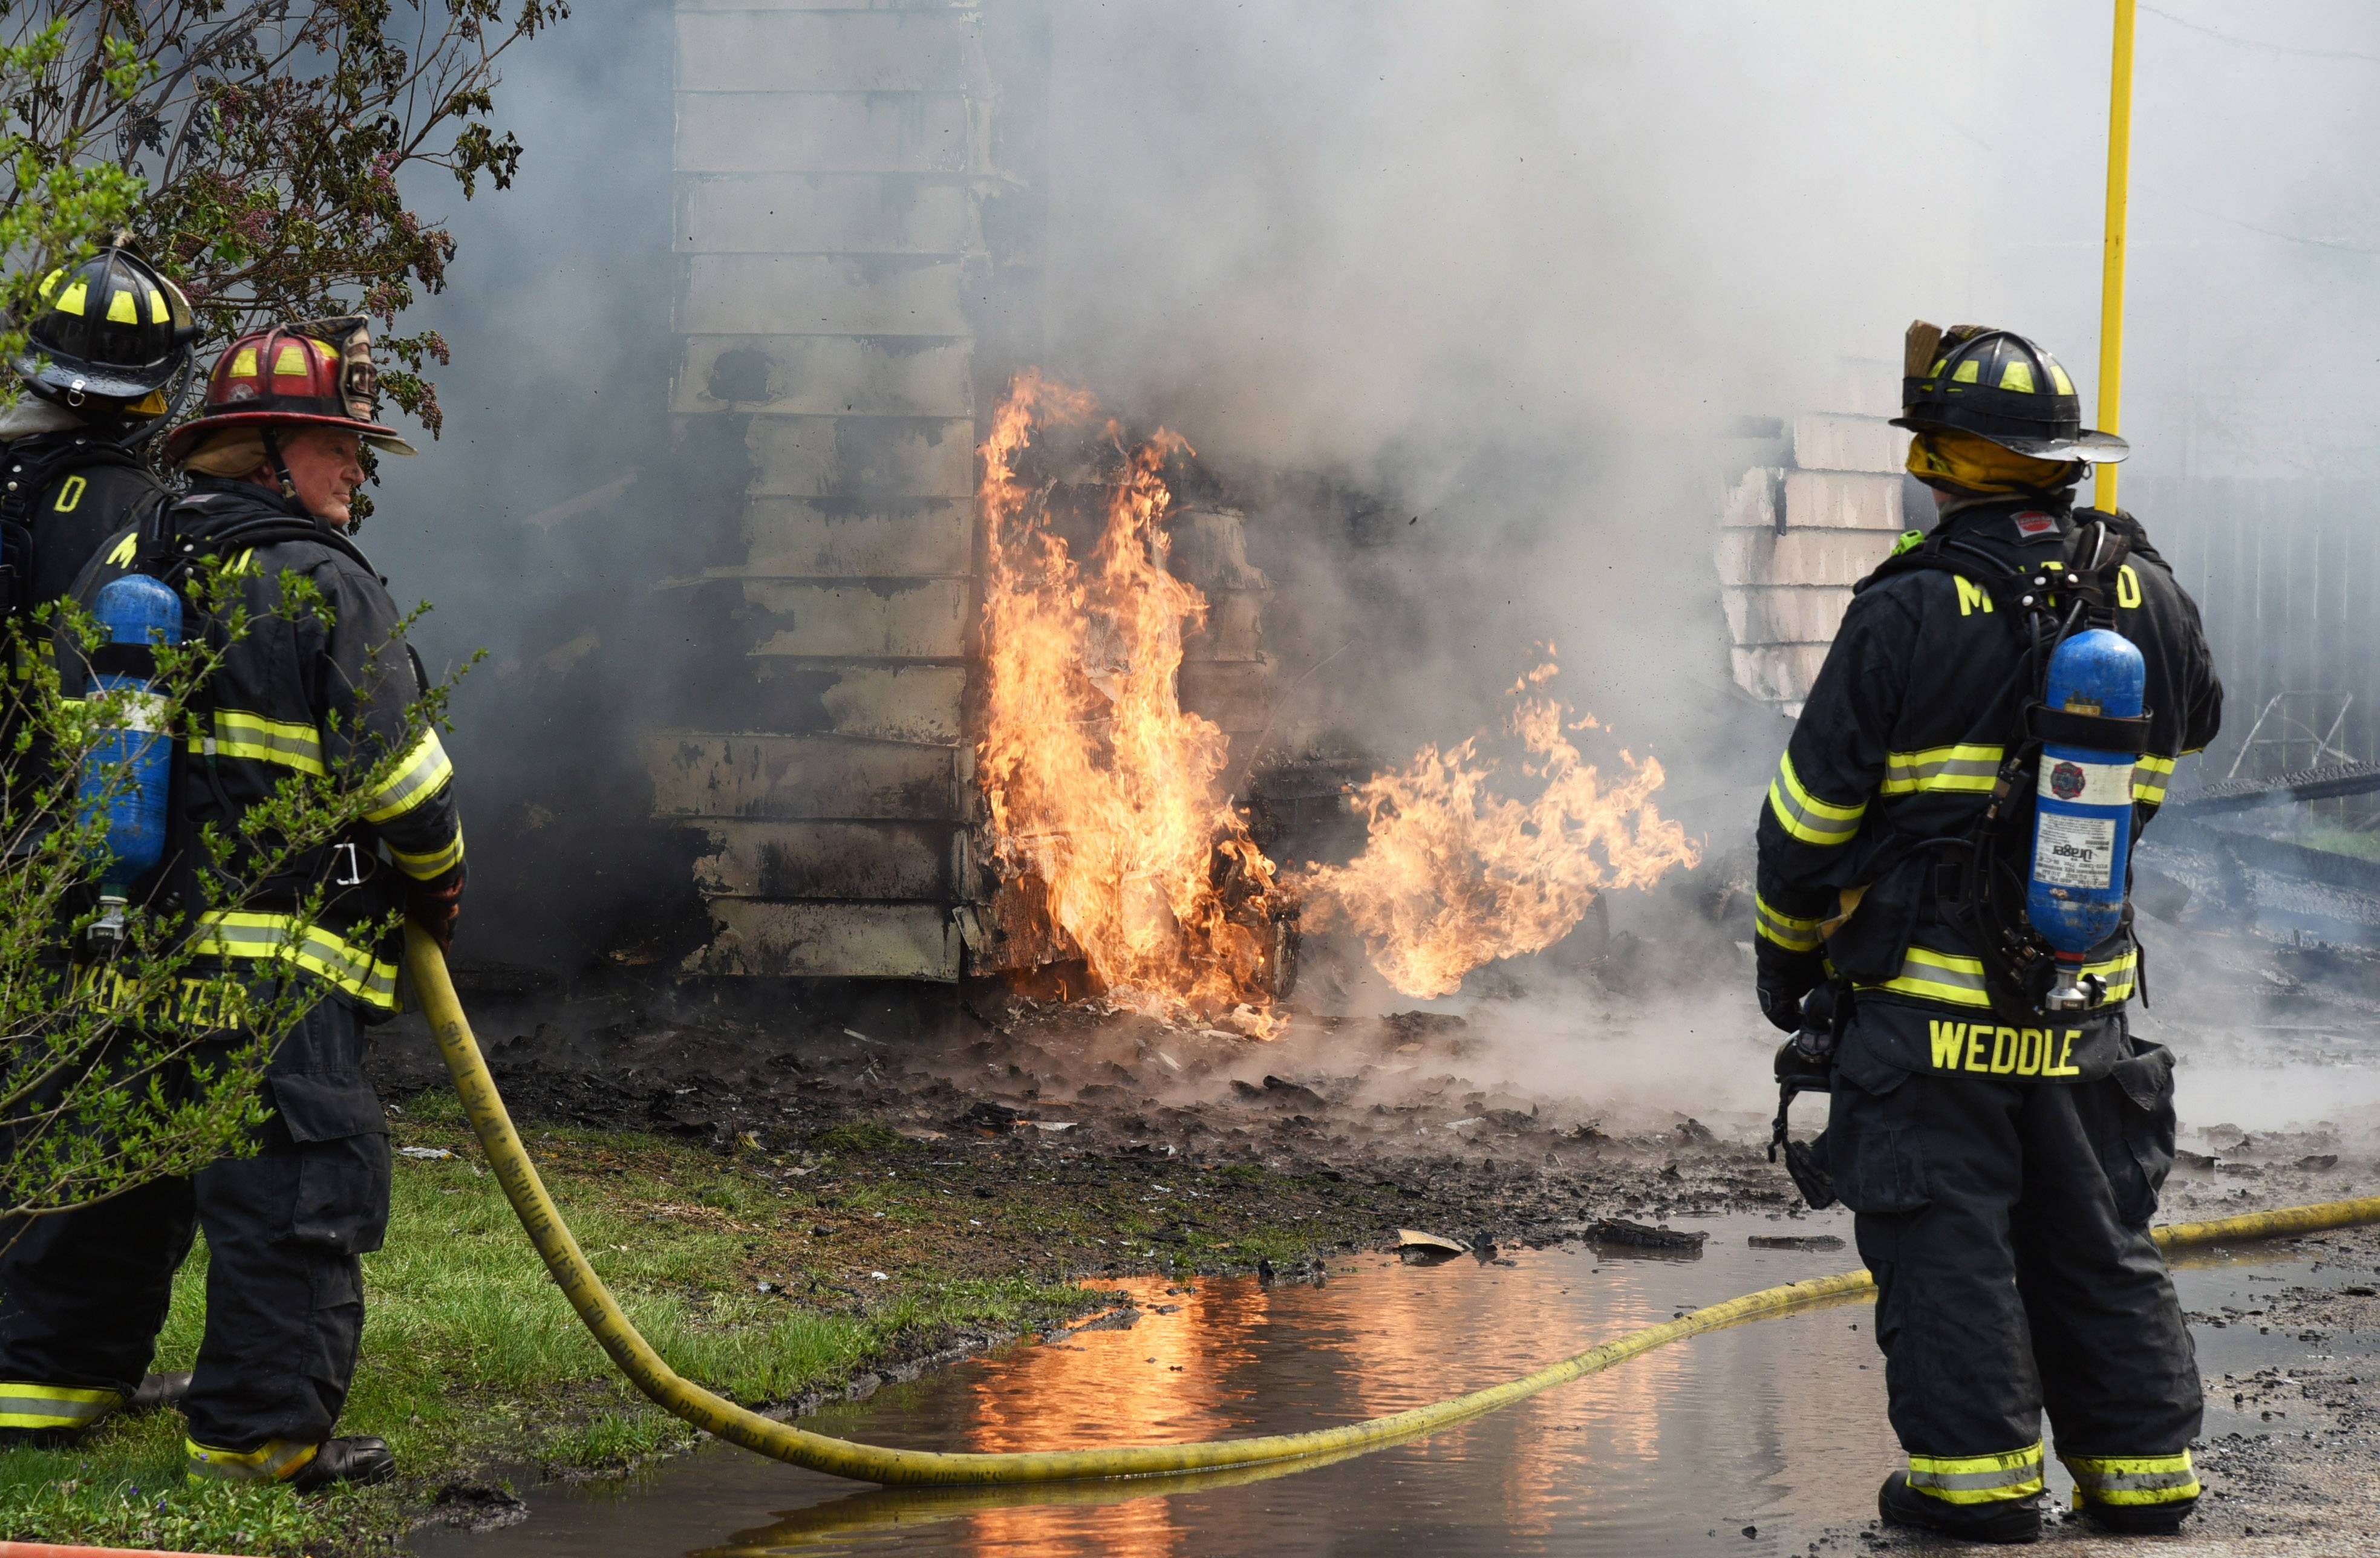 A natural gas line ruptured and burns at a house fire on the 300 block of N. Rosedale Drive Friday morning in Lakemoor.